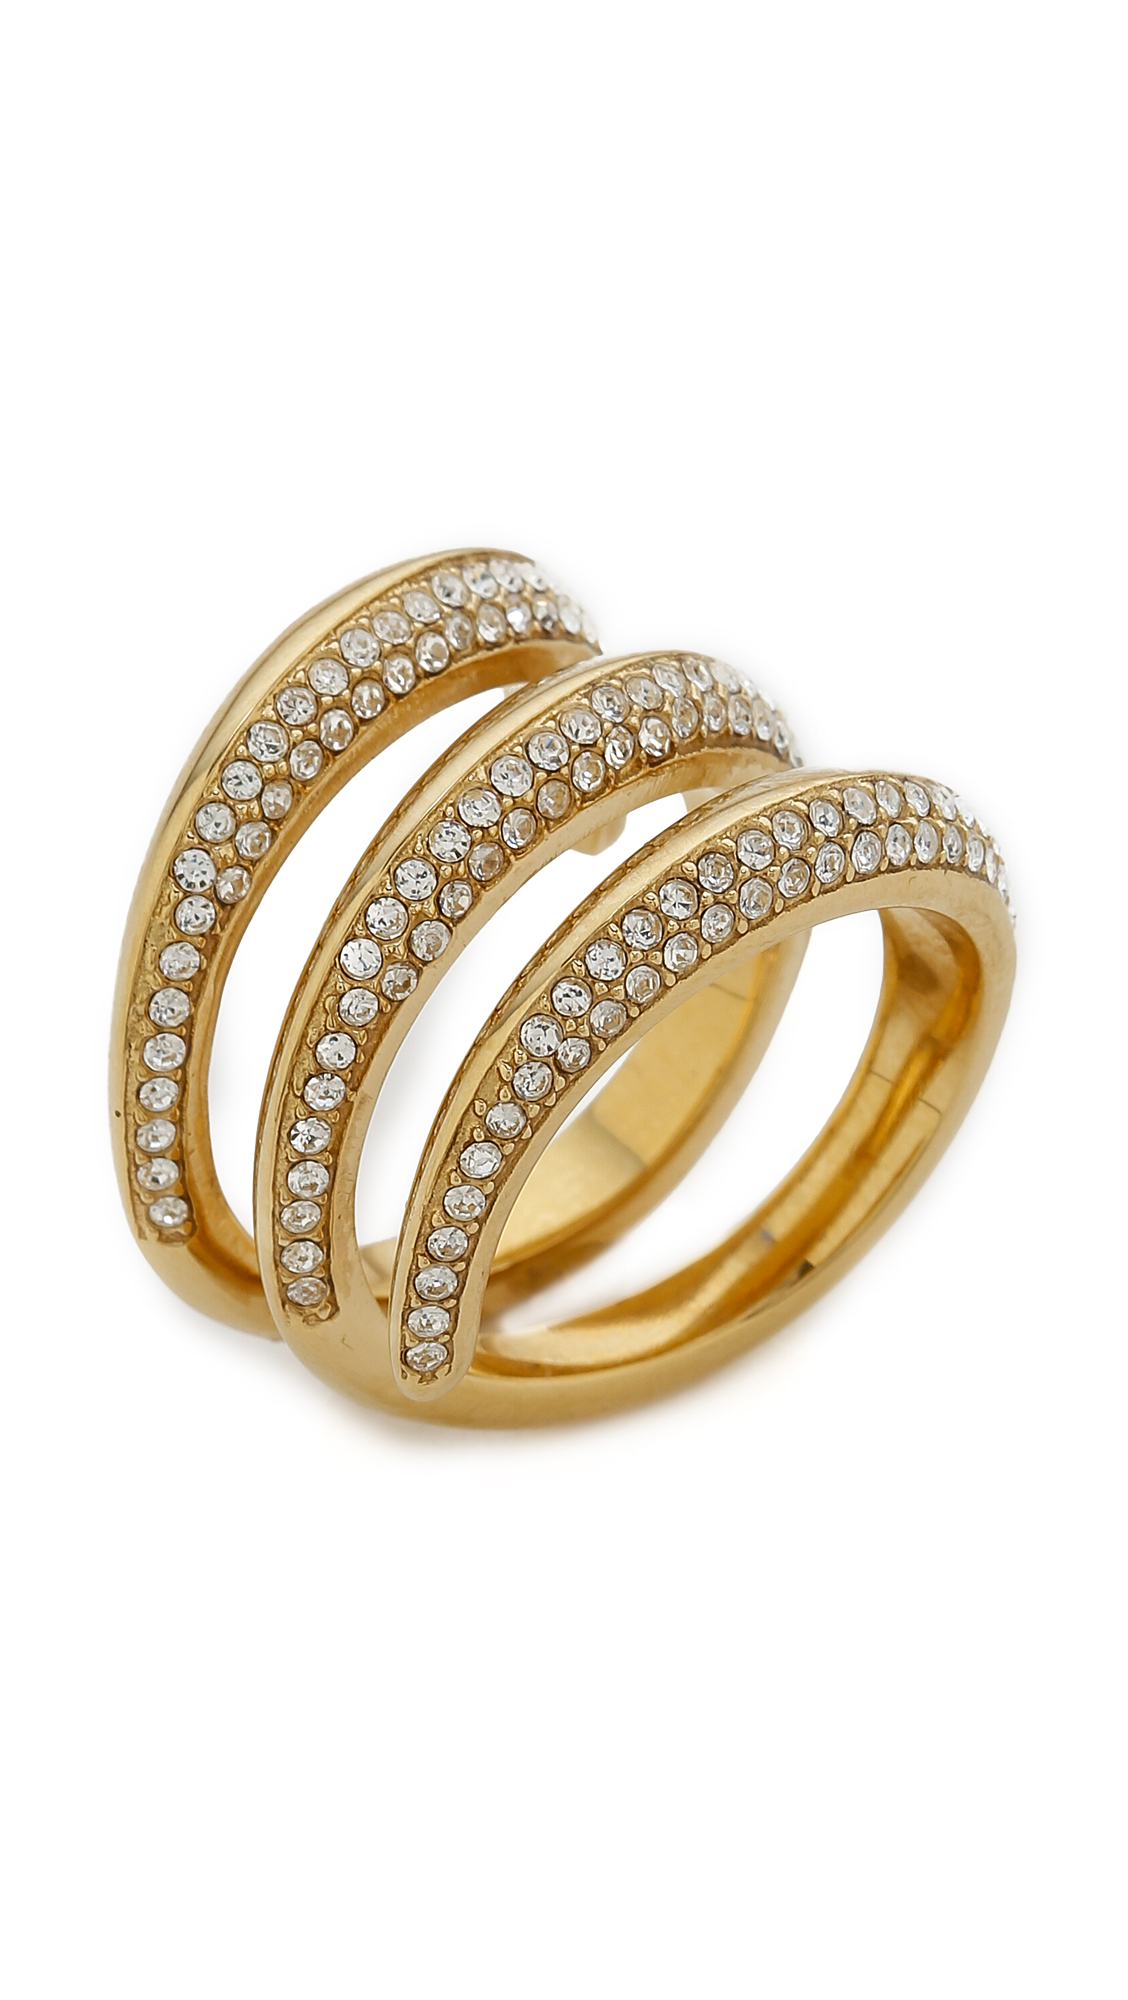 michael kors statement ring gold clear in gold gold